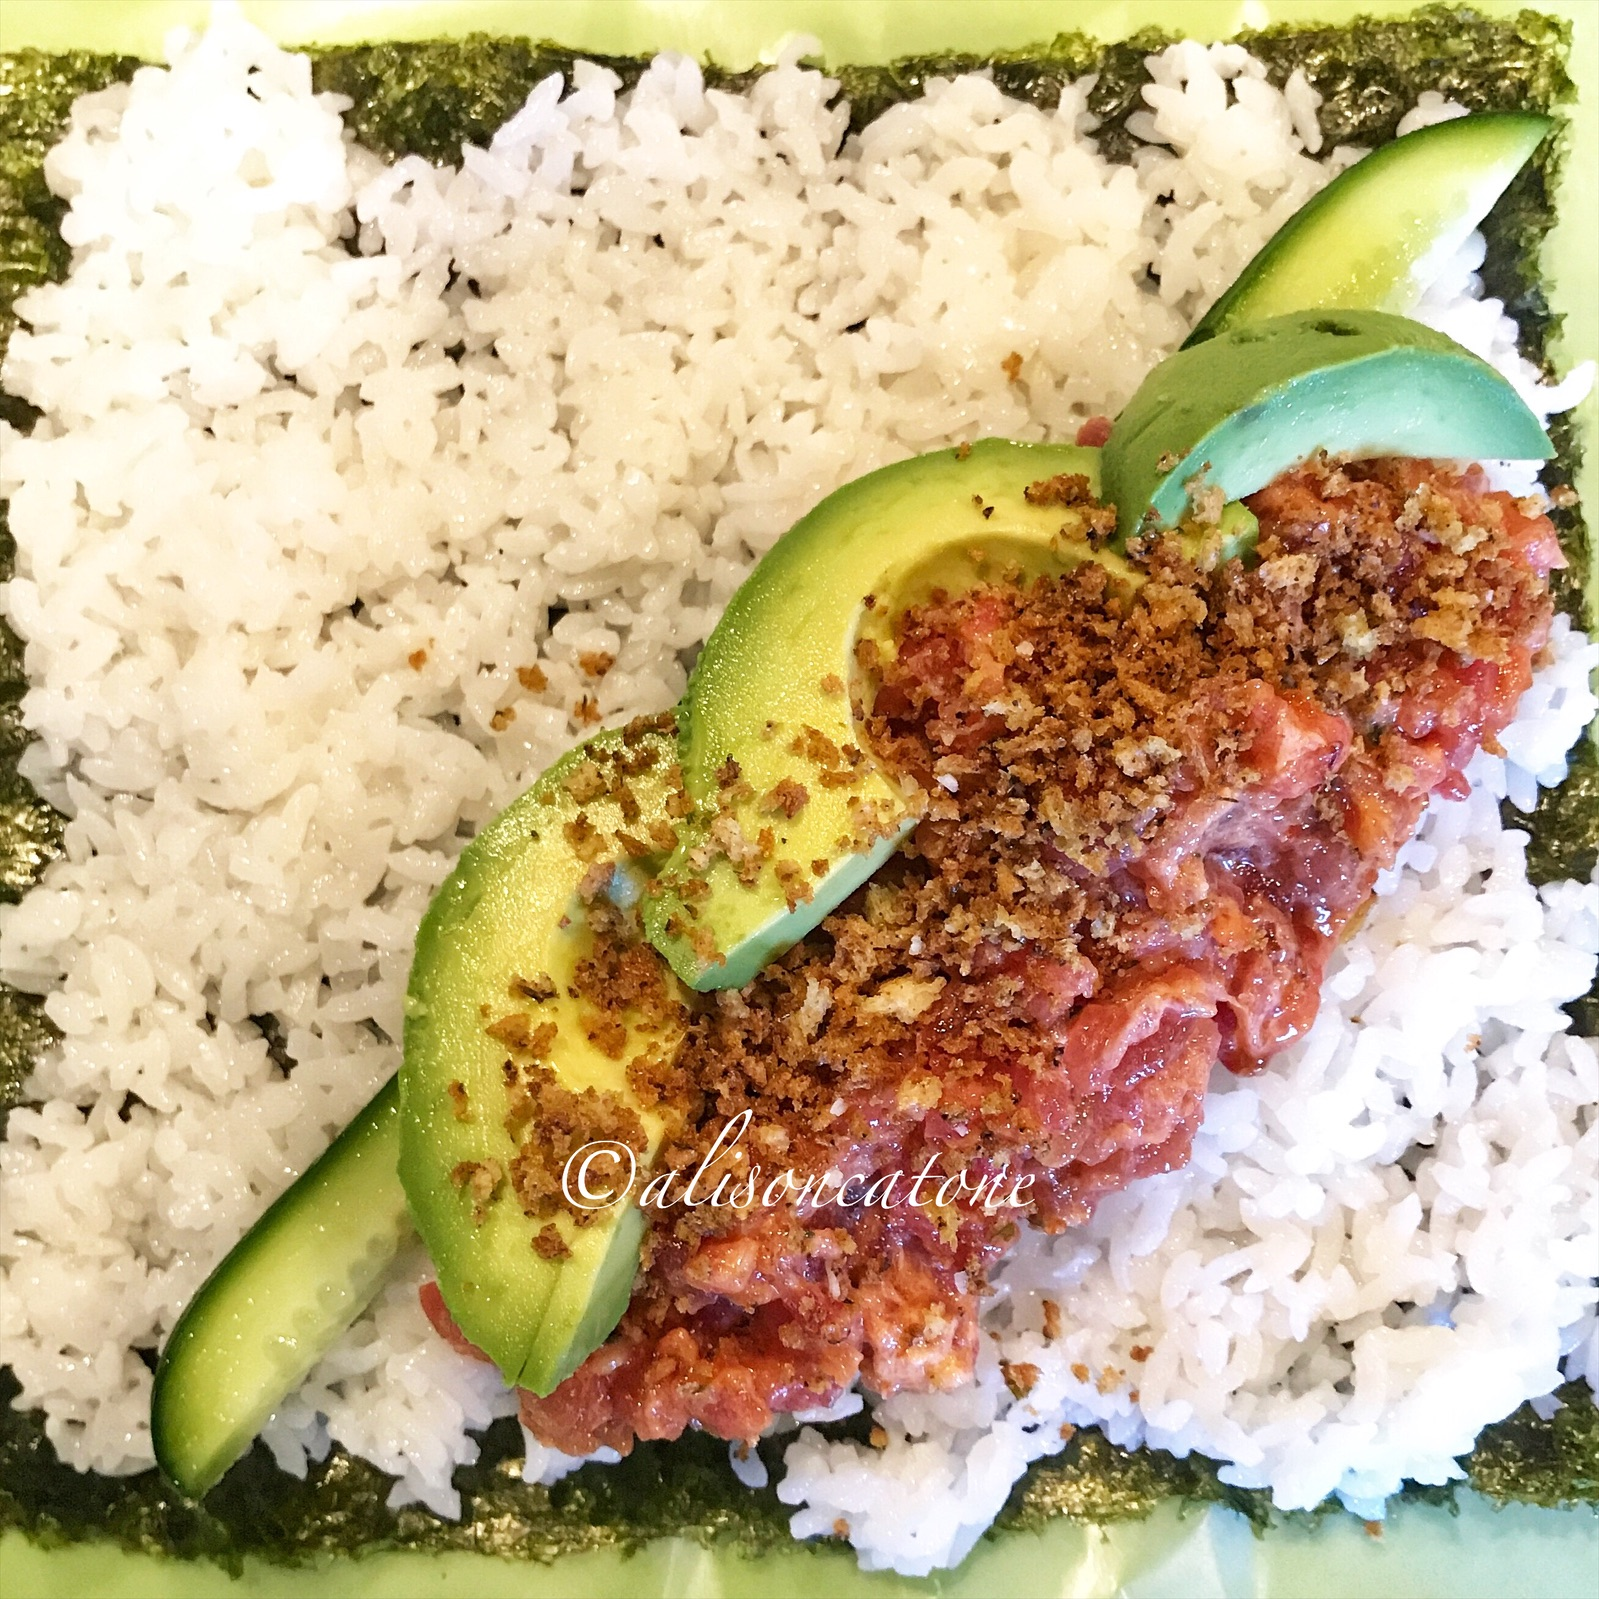 Spicy Tuna Sushi Burrito Recipe